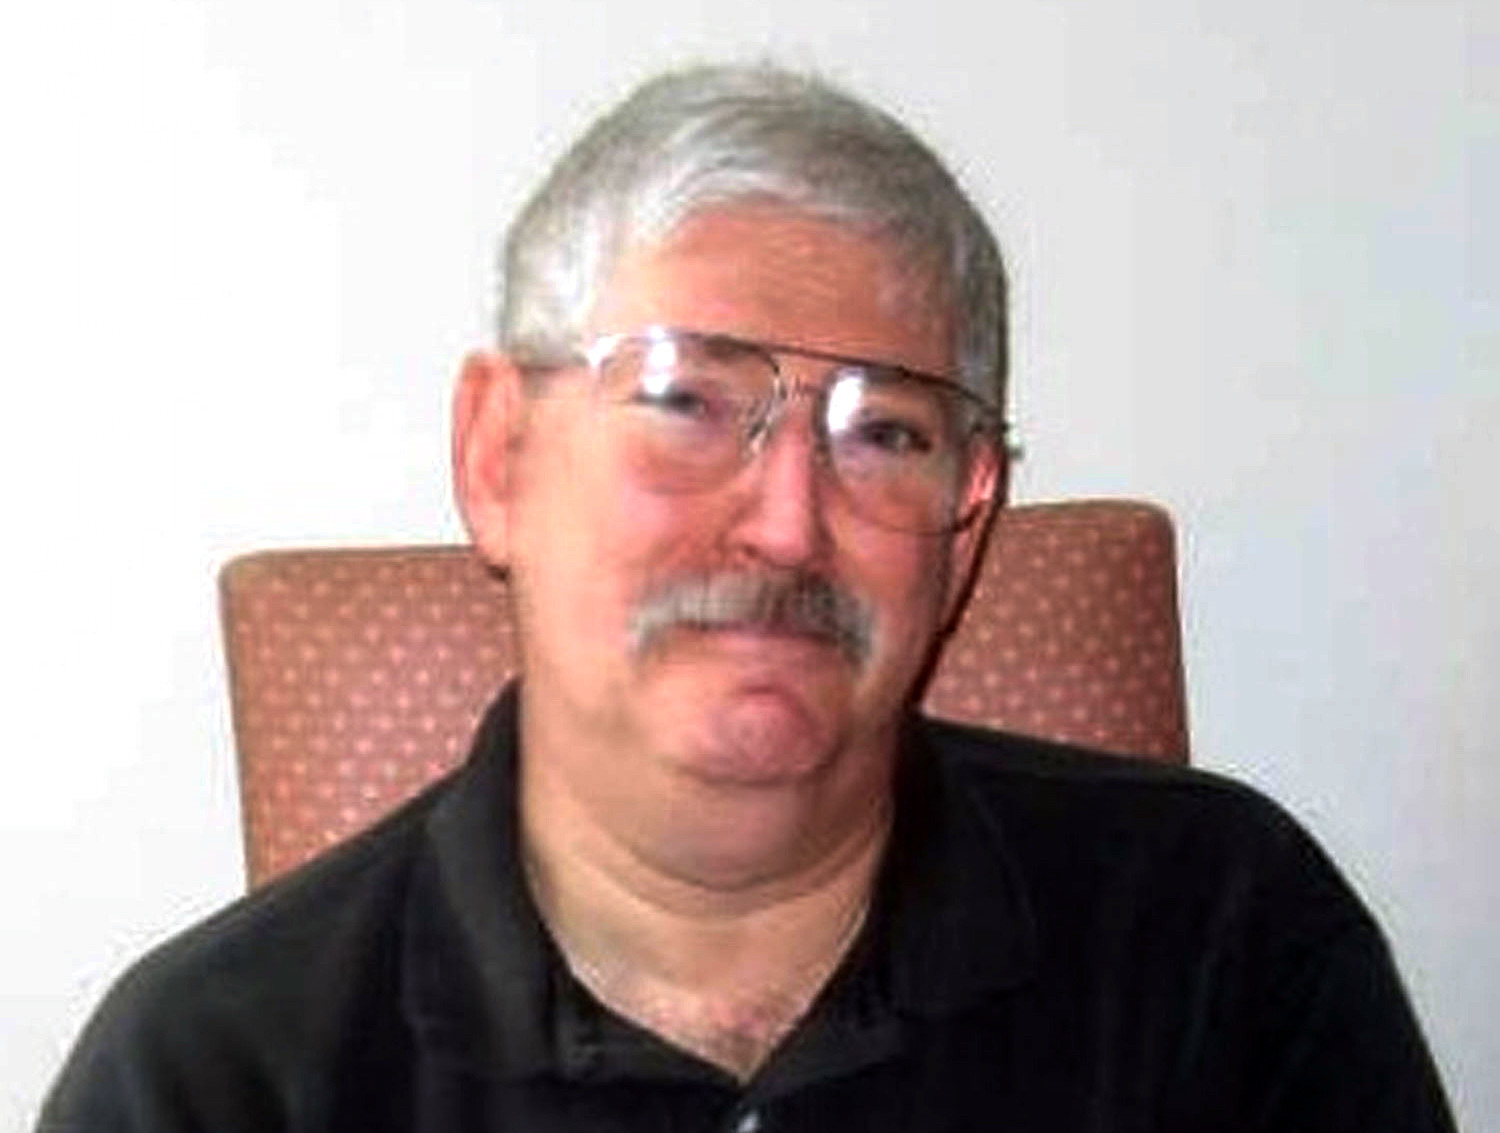 One more Iranian victim: Bob Levinson's death after a decade-plus captivity is a reminder of an outlaw regime's evil hostage-taking tactics